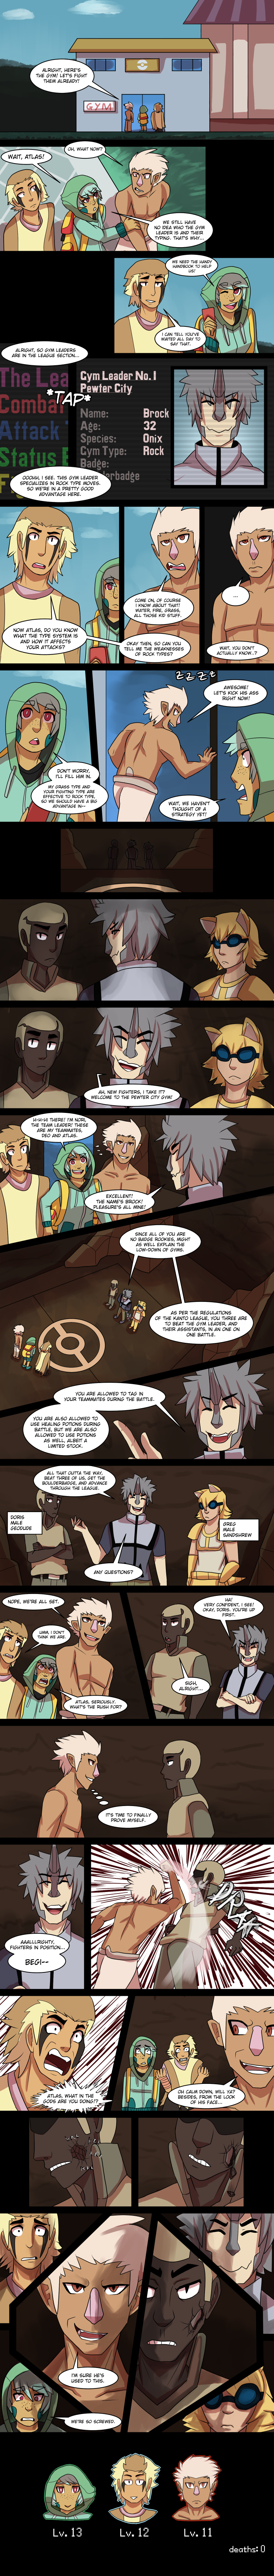 Making Matcha Chp.1 pg.12.5 by xj2z9